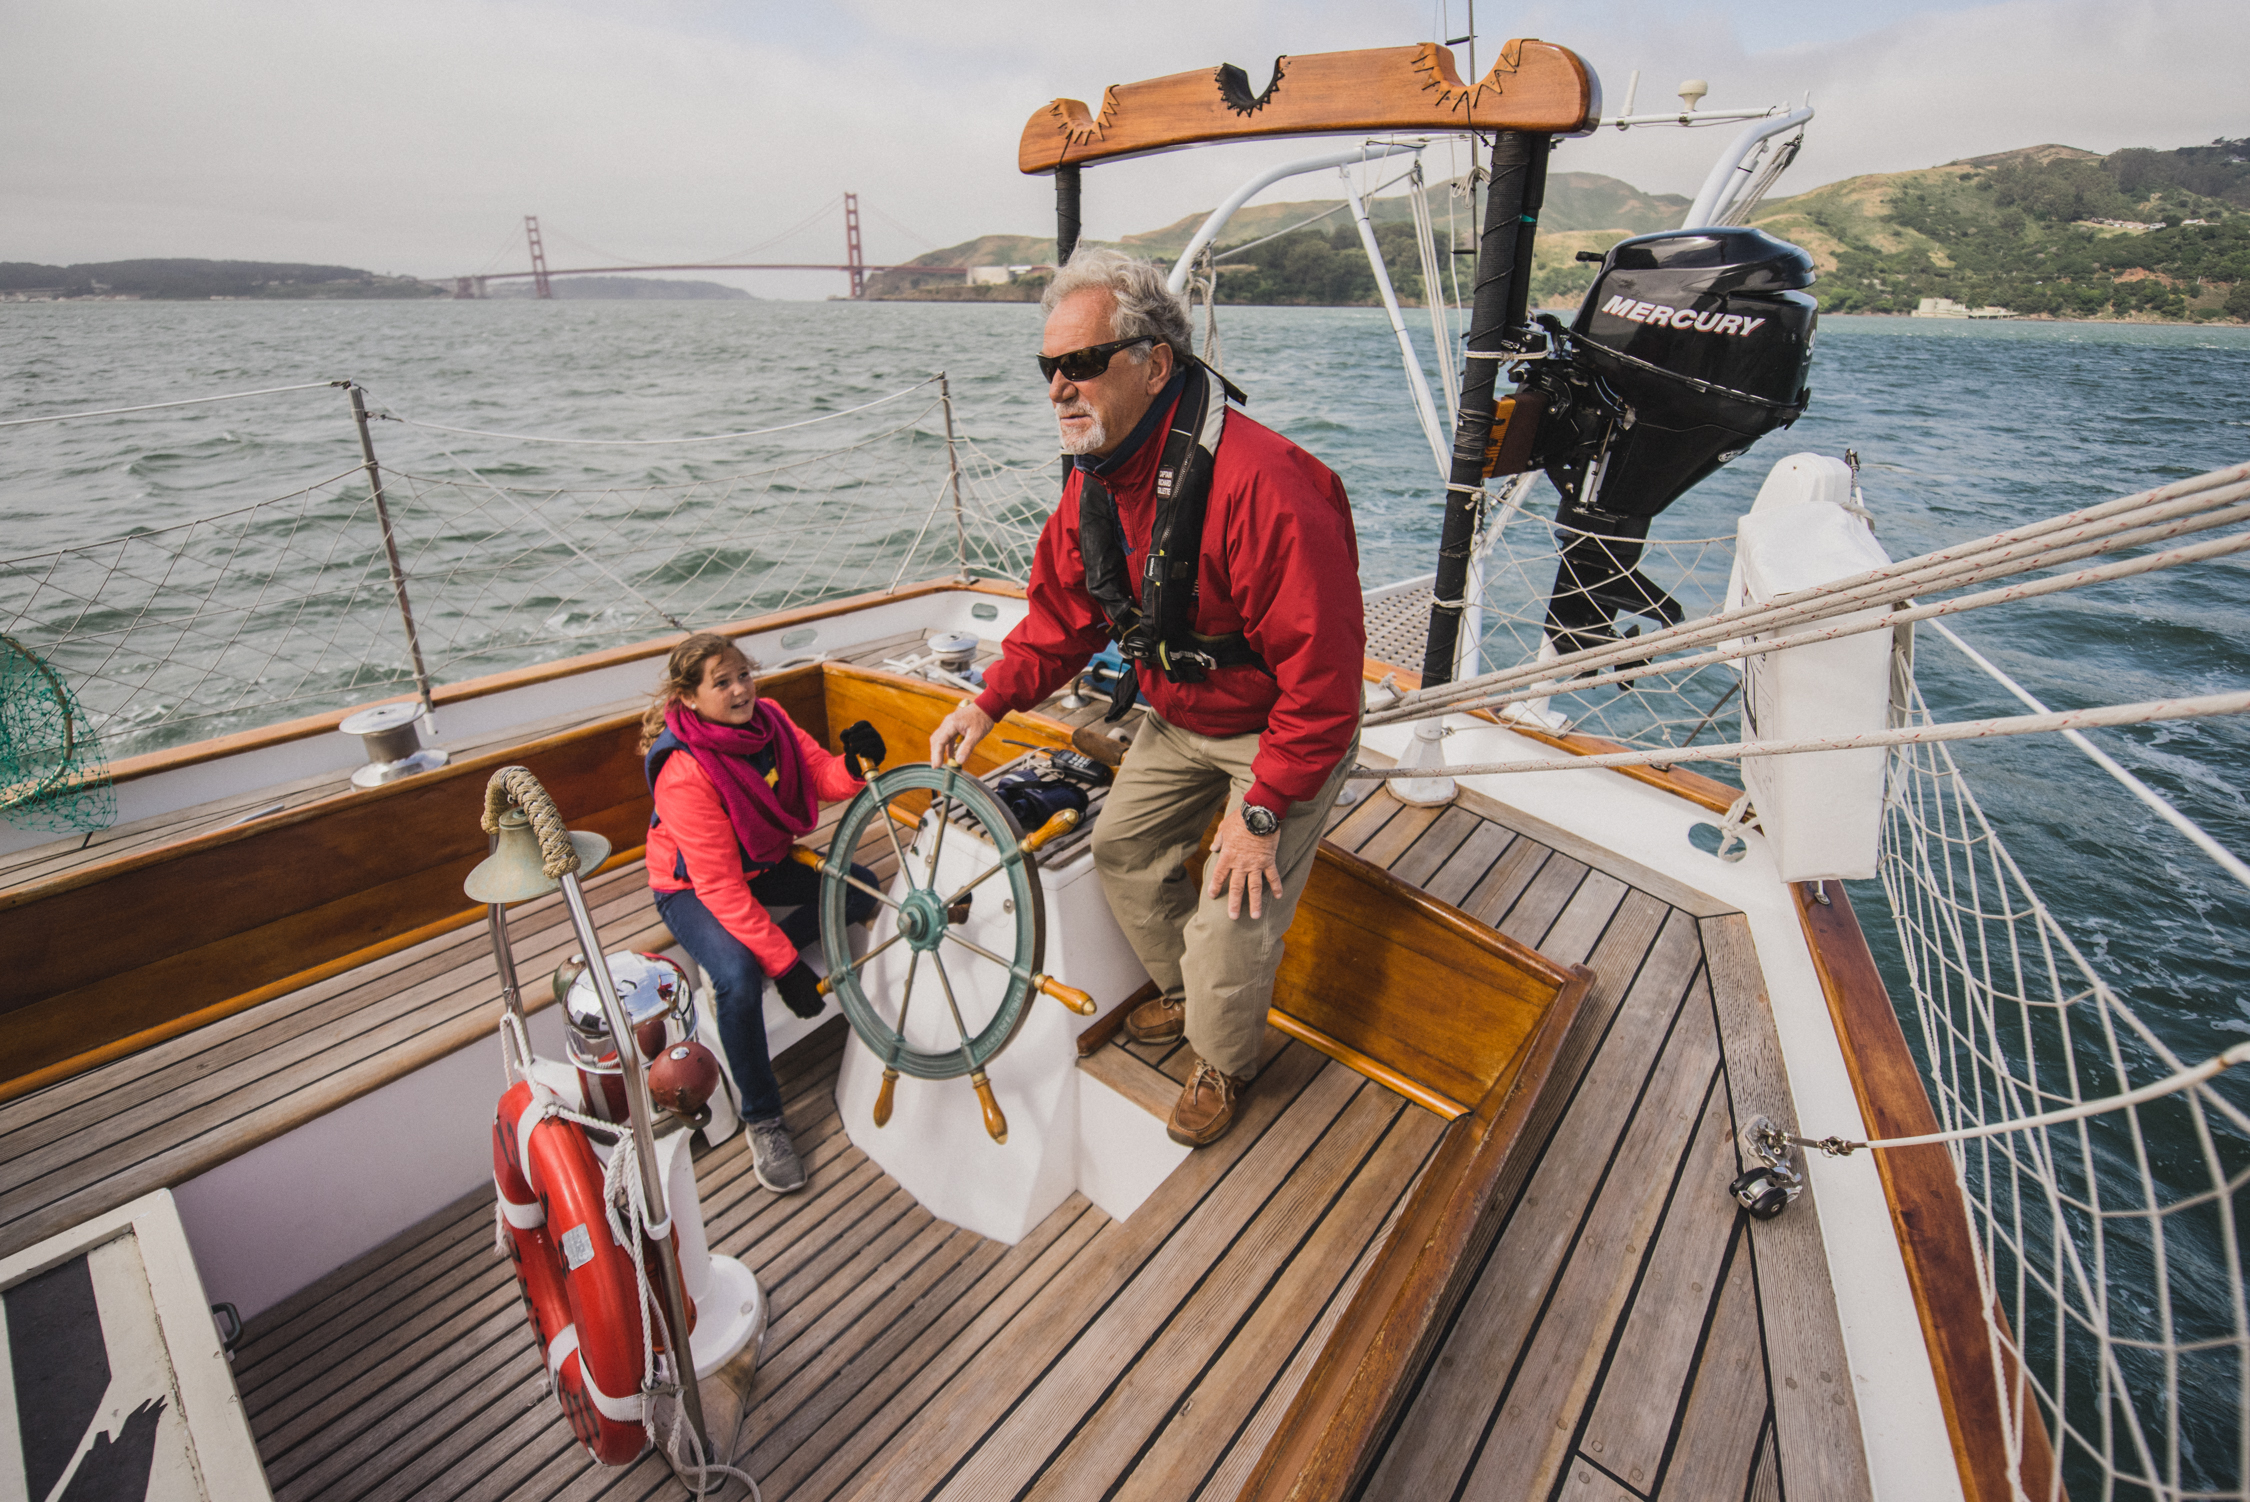 Call of the Sea - San Francisco - Another Look - 05.06.16-48.jpg